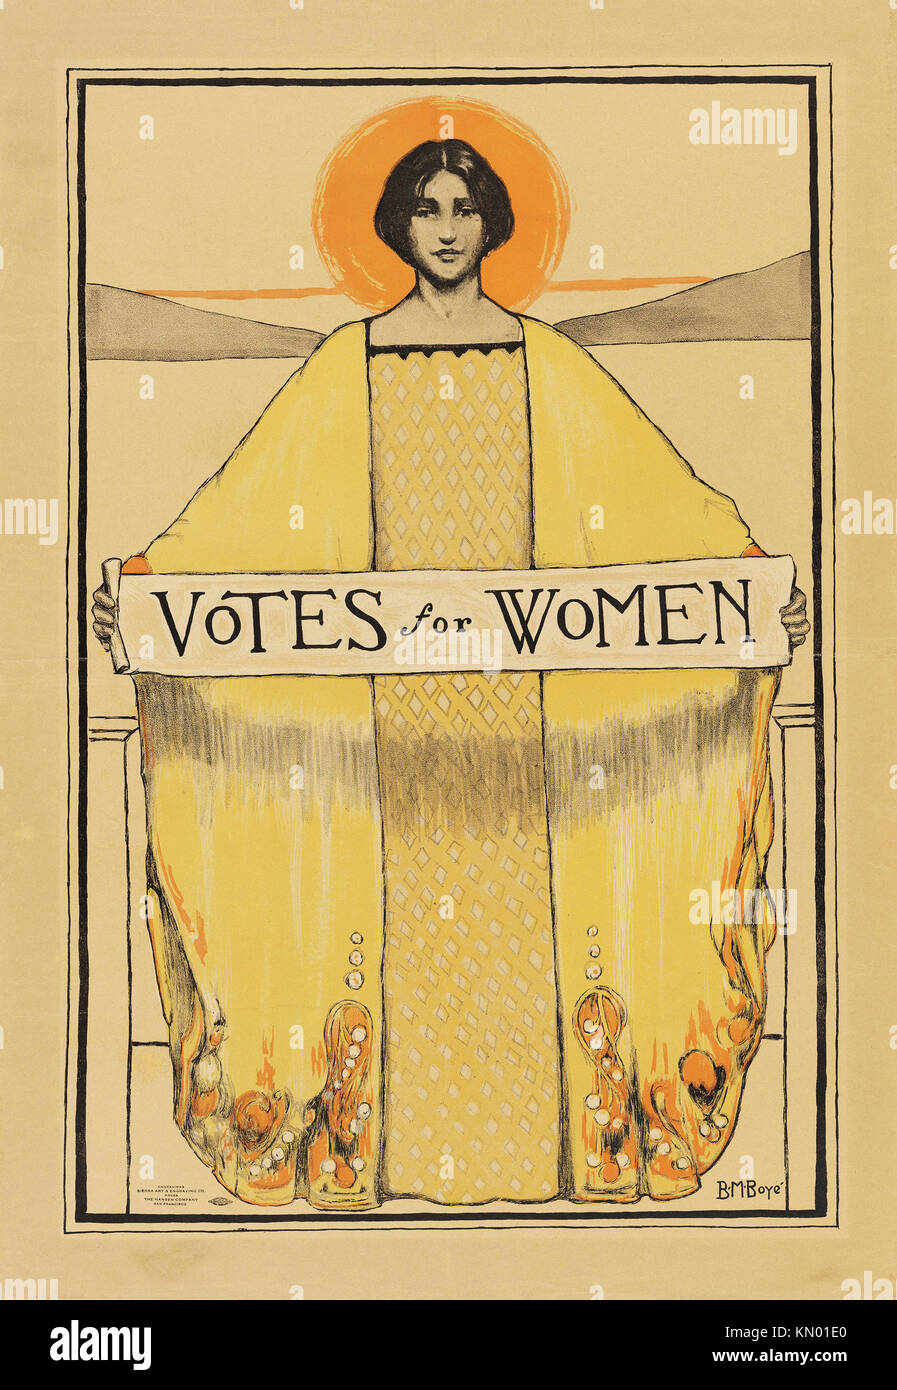 'Votes for Women' poster dated 1911 by B. M Boyce - Stock Image